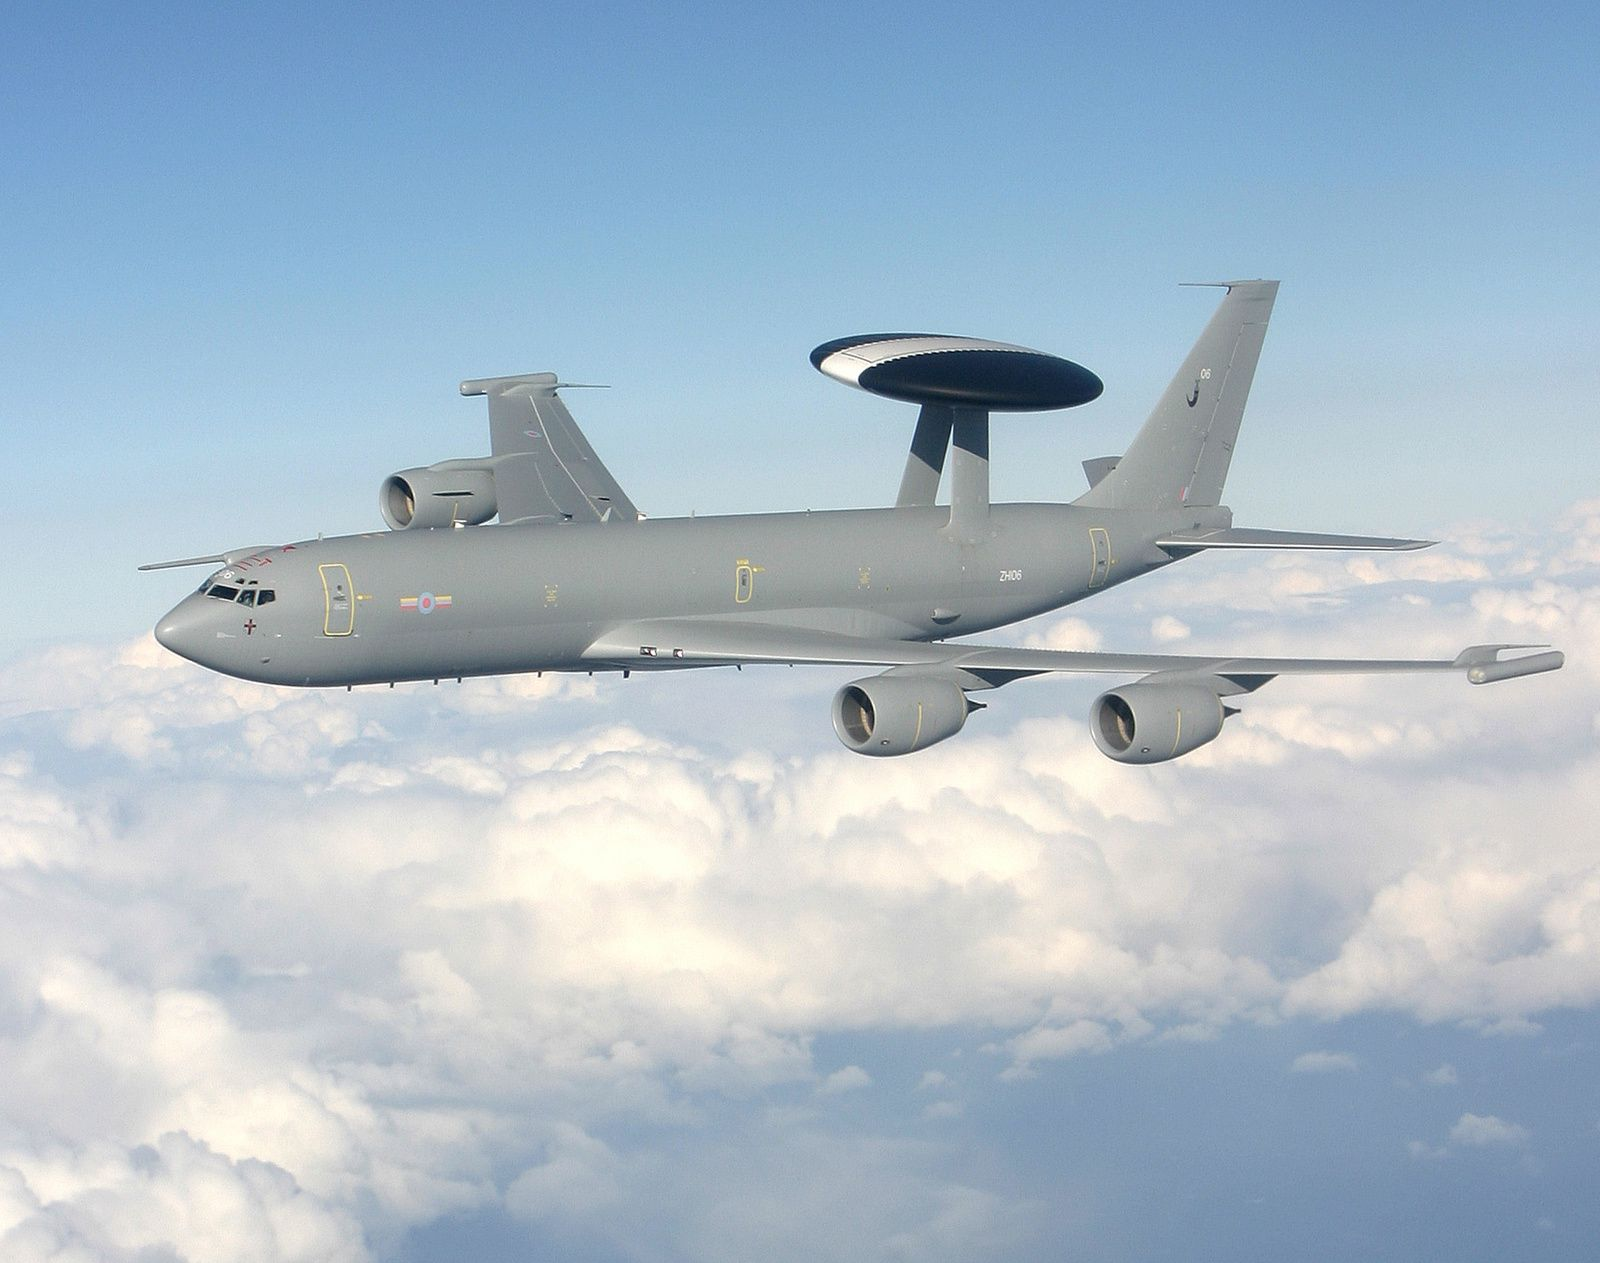 La Royal Air Force cloue au sol sa flotte de E-3D Sentry AWACS